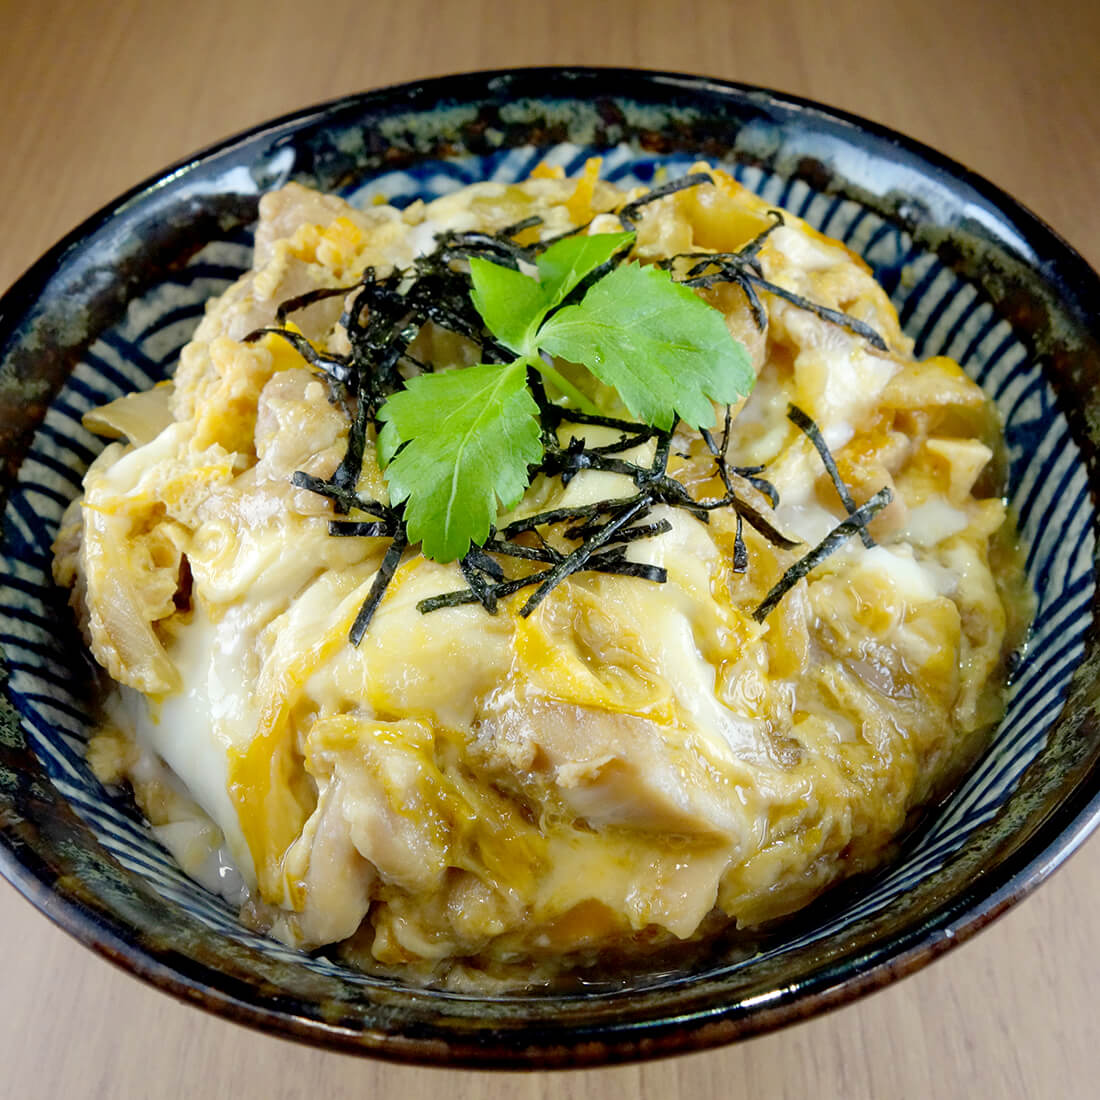 Oyako don<br />(Chicken and egg over rice)